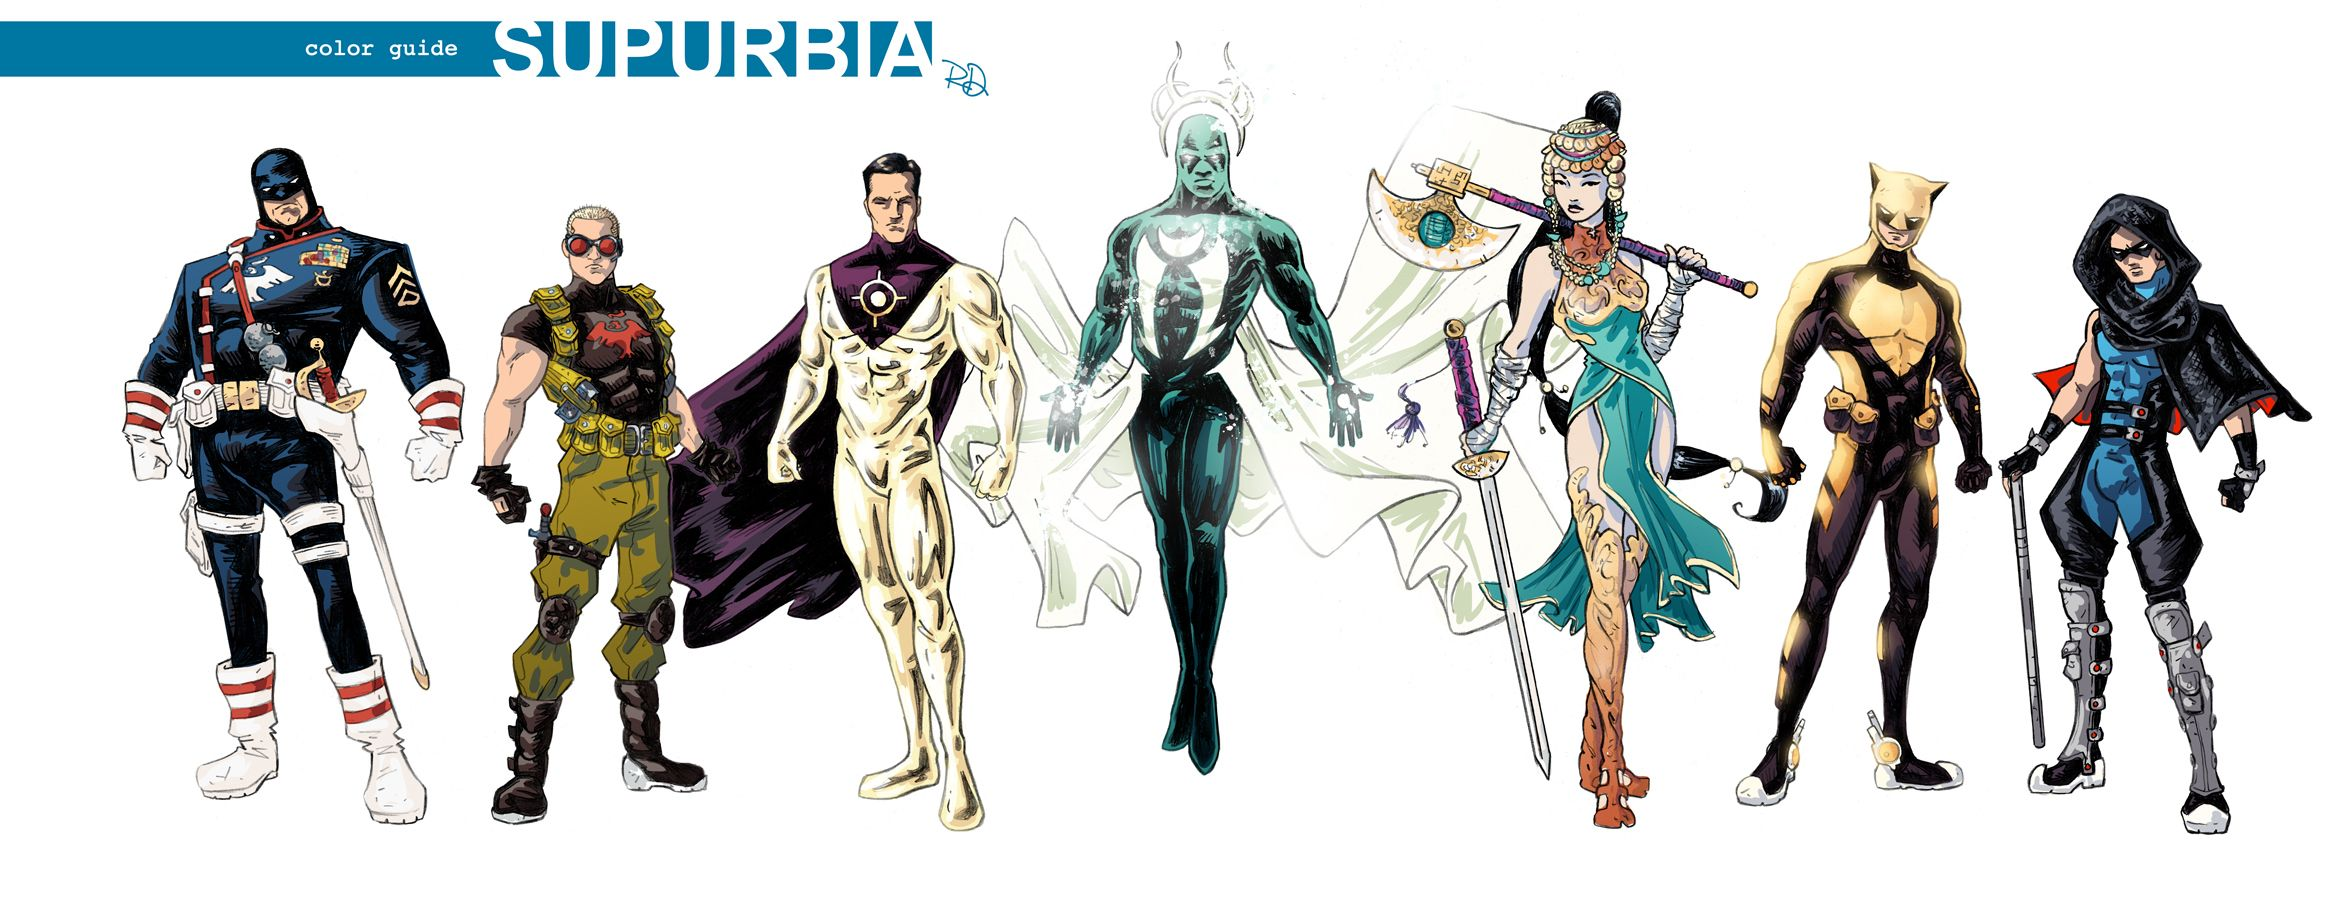 Supurbia-character-designs-superhero-color-guide-v3-1.jpg ...